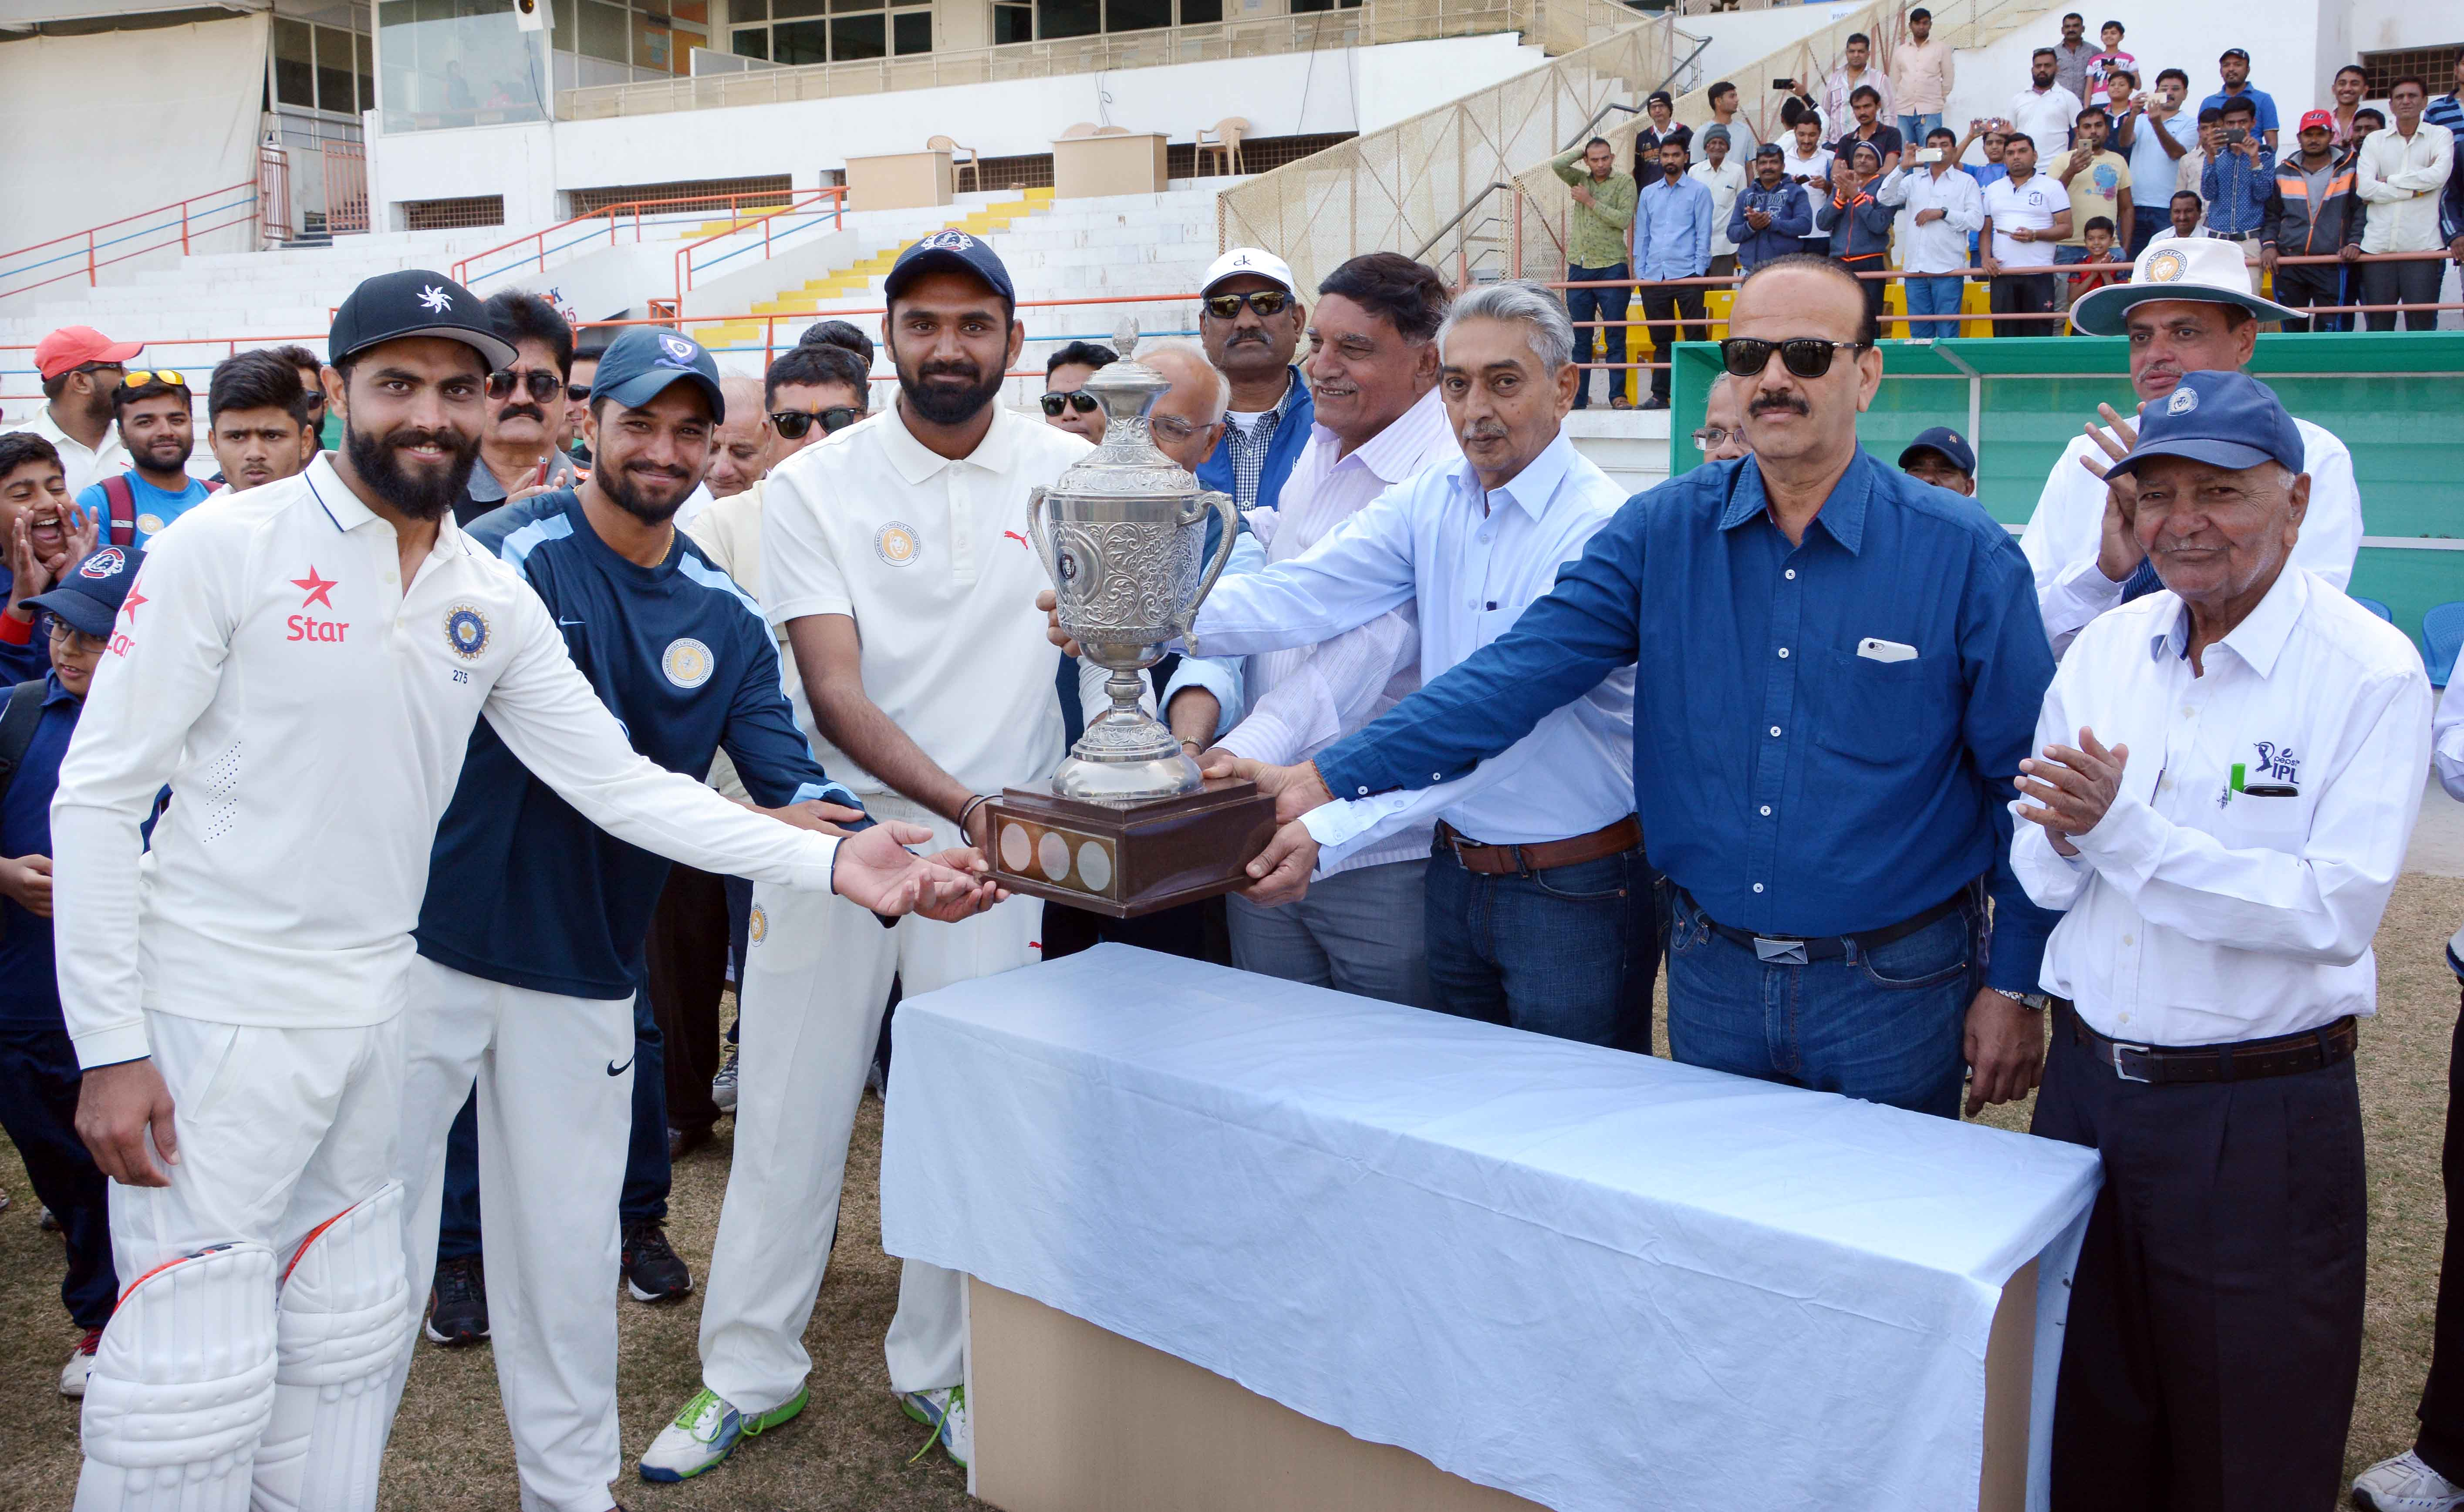 Inter District Twenty20 tournament - Final - Jamnagar vs Railways